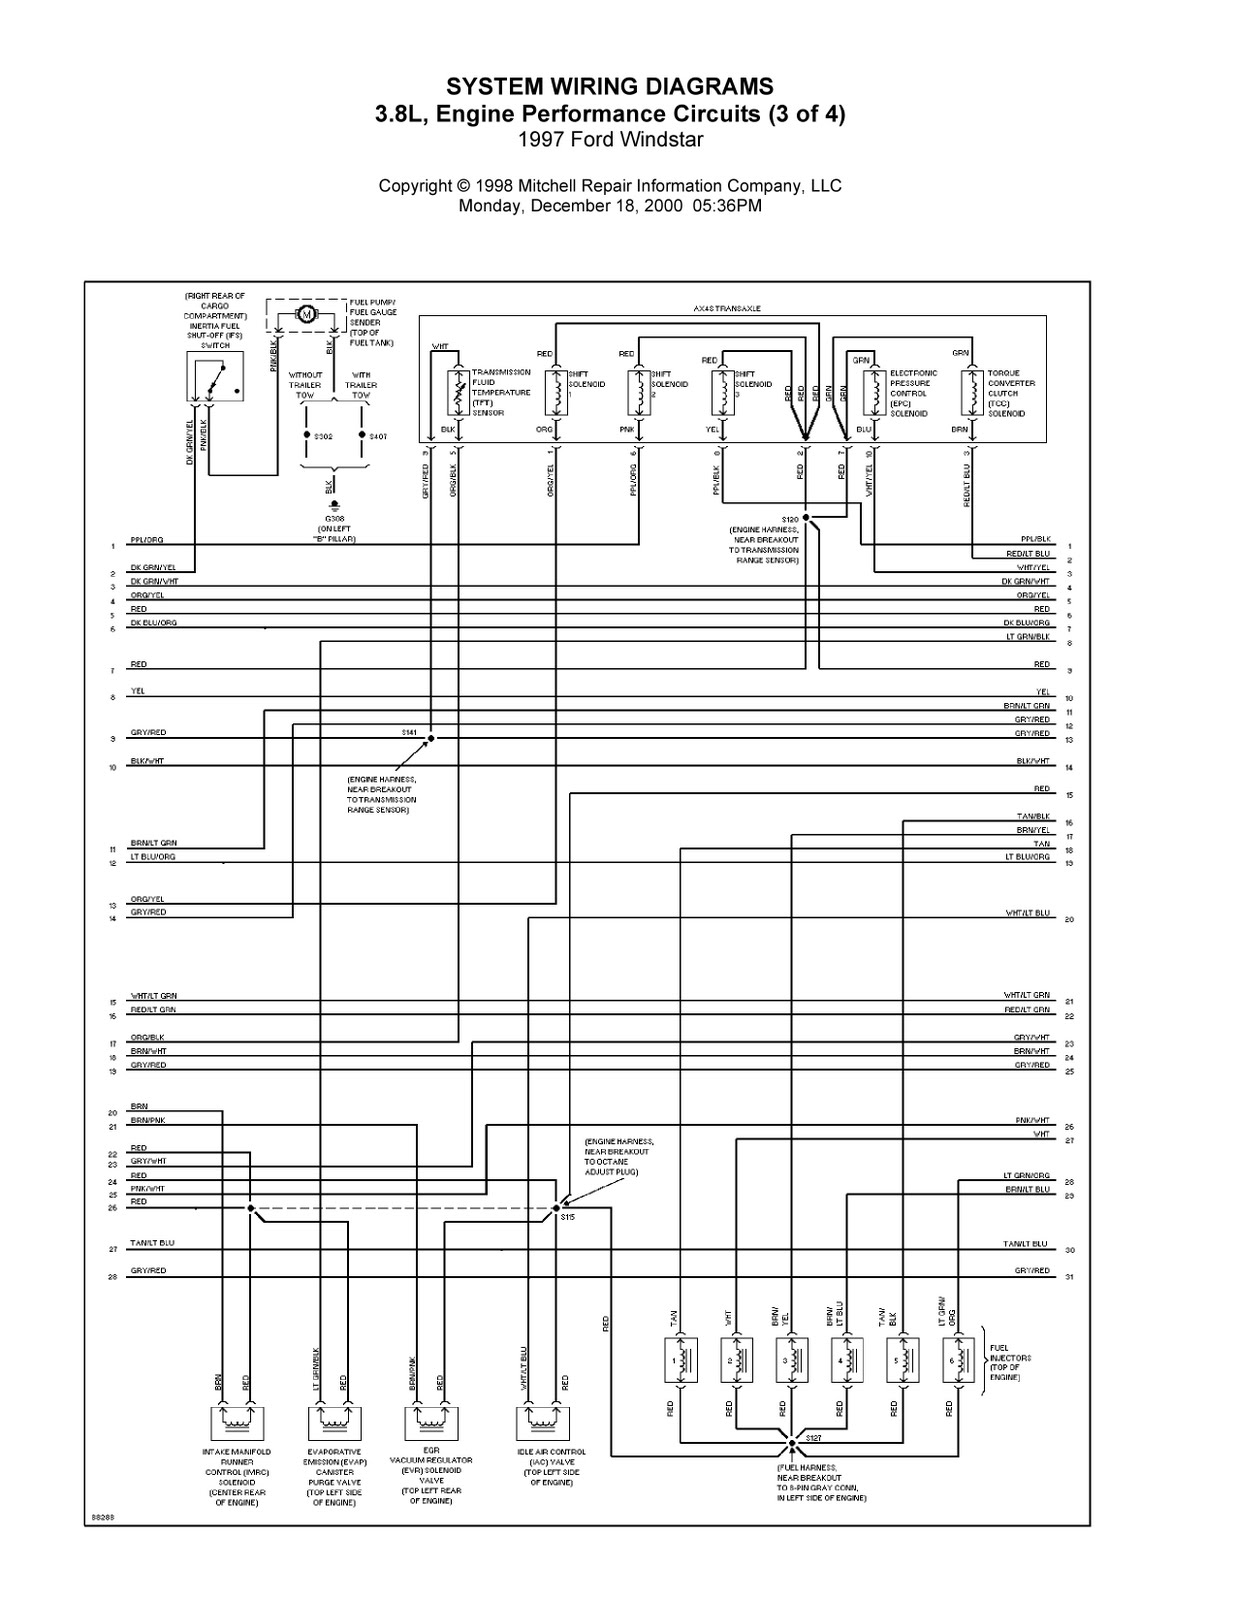 windshield washer wiring diagram get free image about wiring diagram